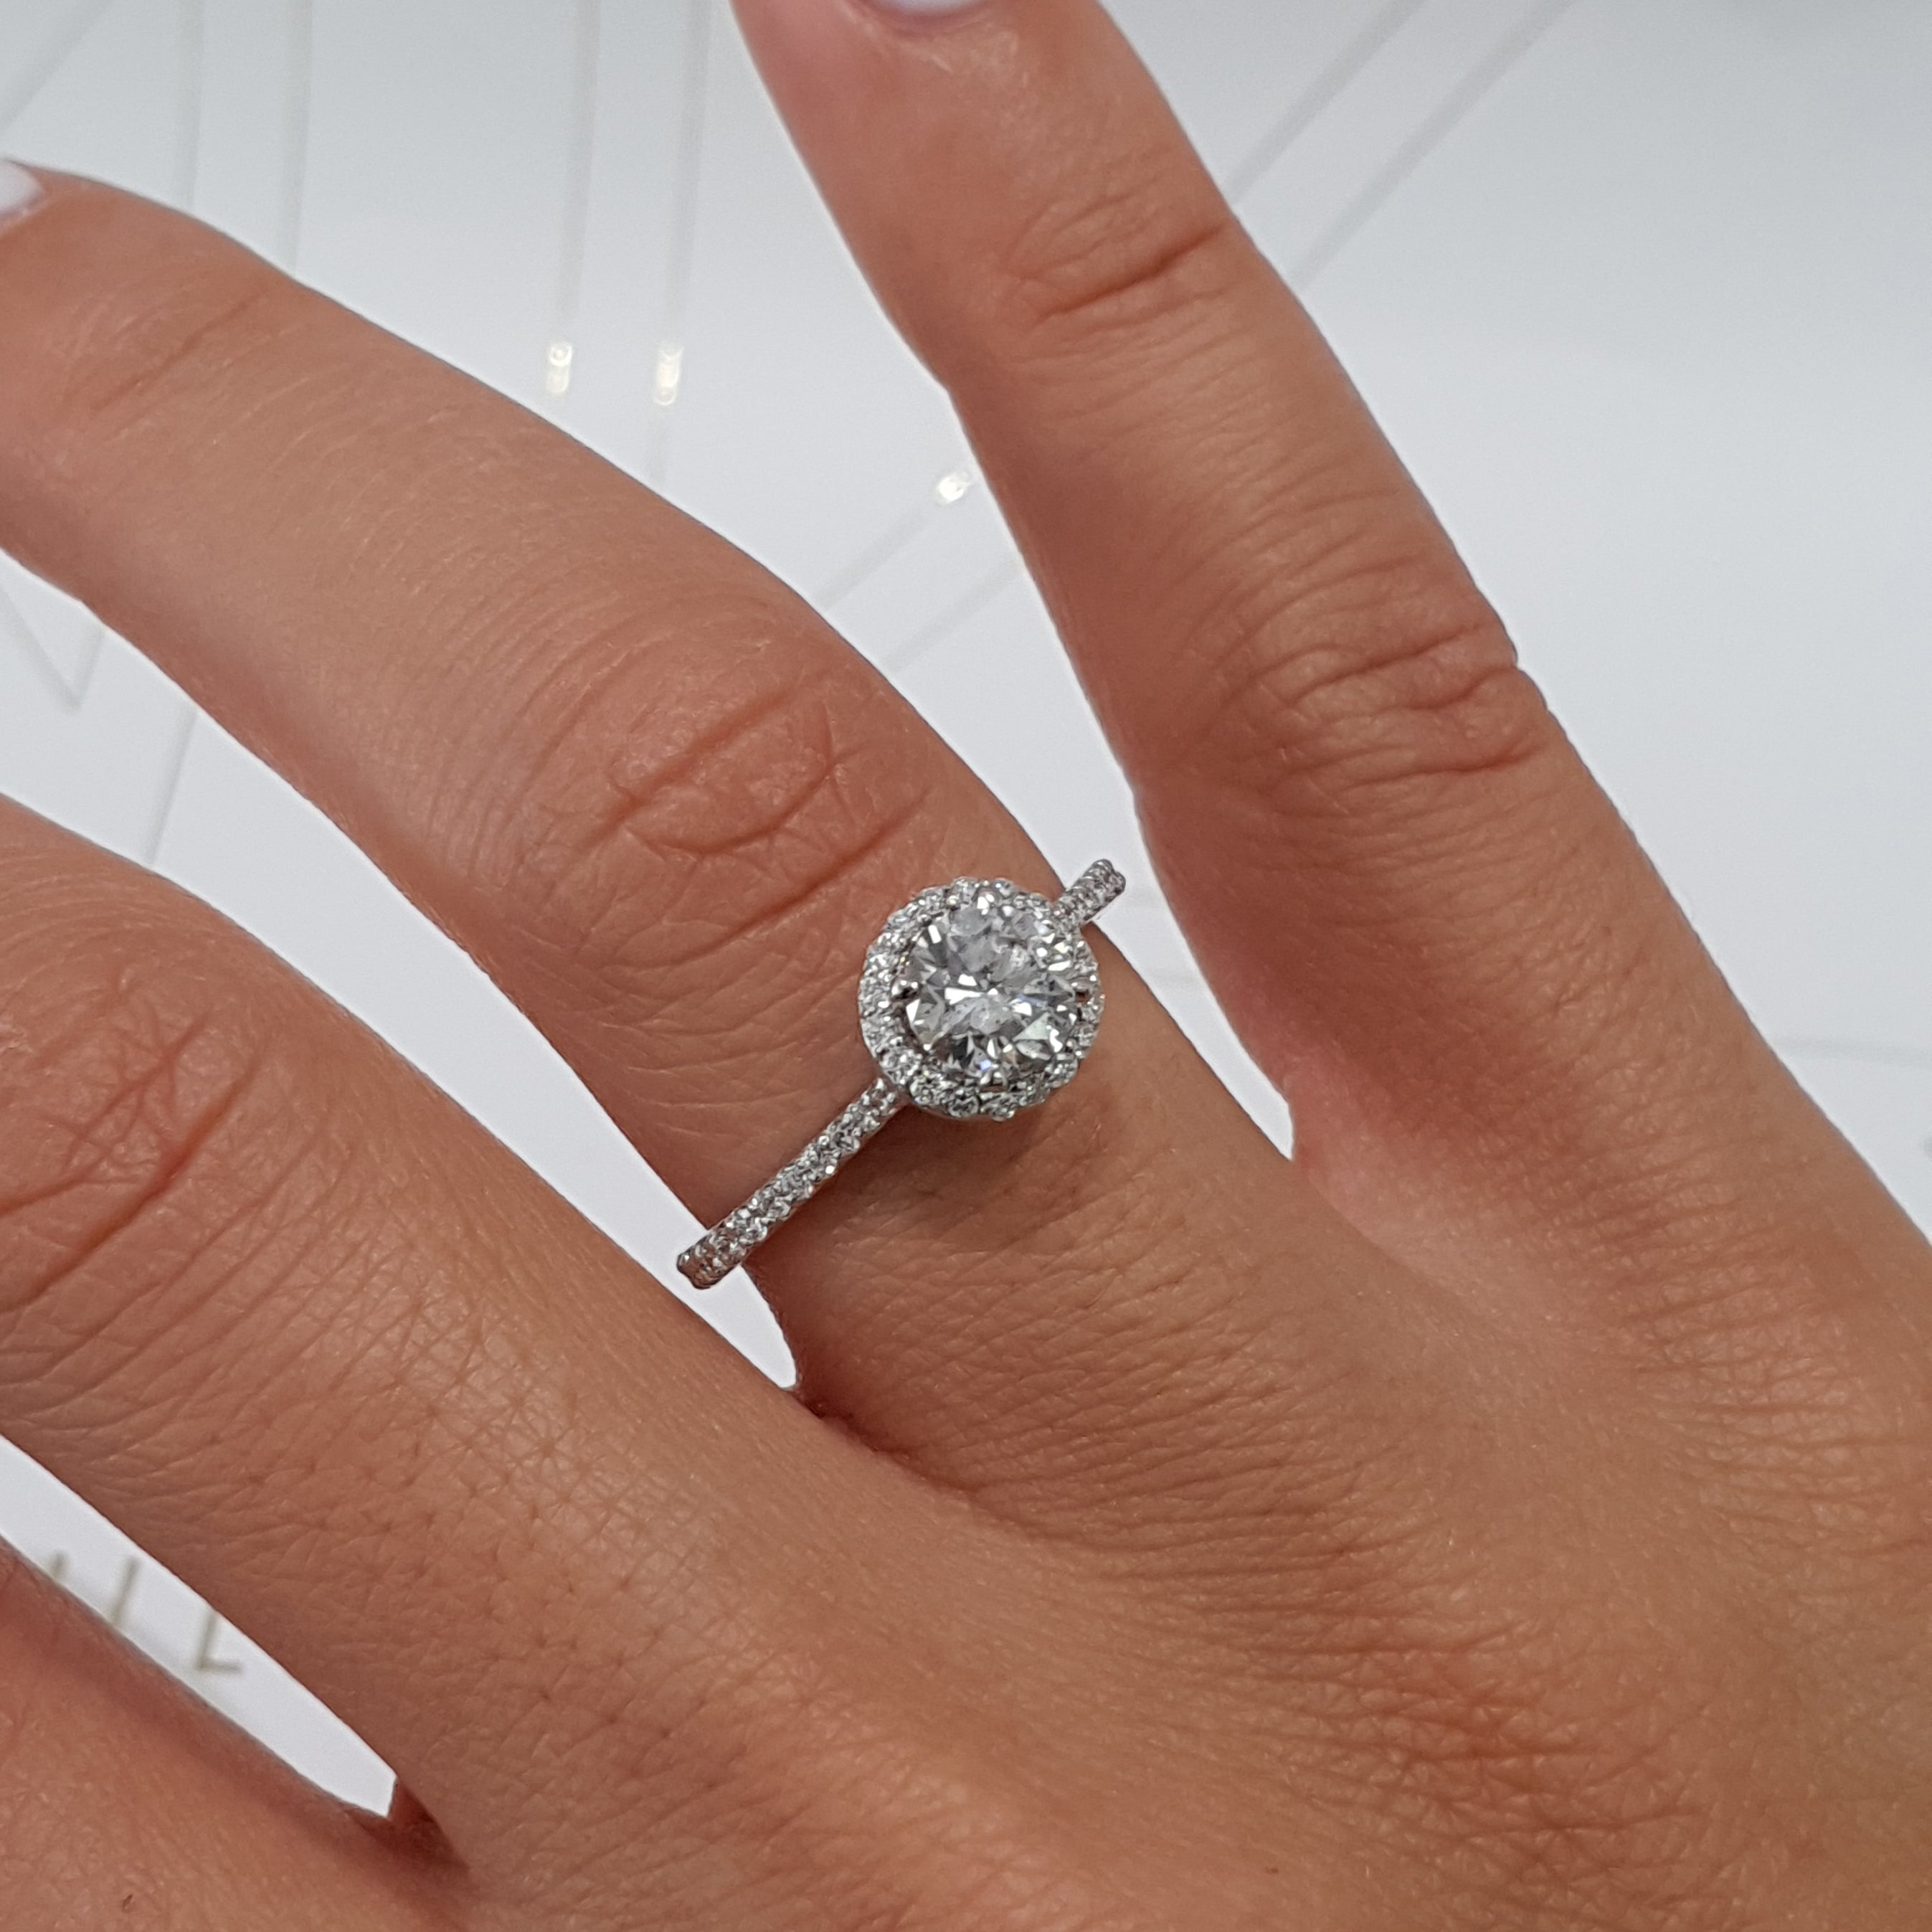 The Layla Lab Grown Ring -  14K WHITE GOLD HALO DIAMOND ENGAGEMENT RING STYLE - 1.25 CARAT F VS2 ROUND CUT #LG10018